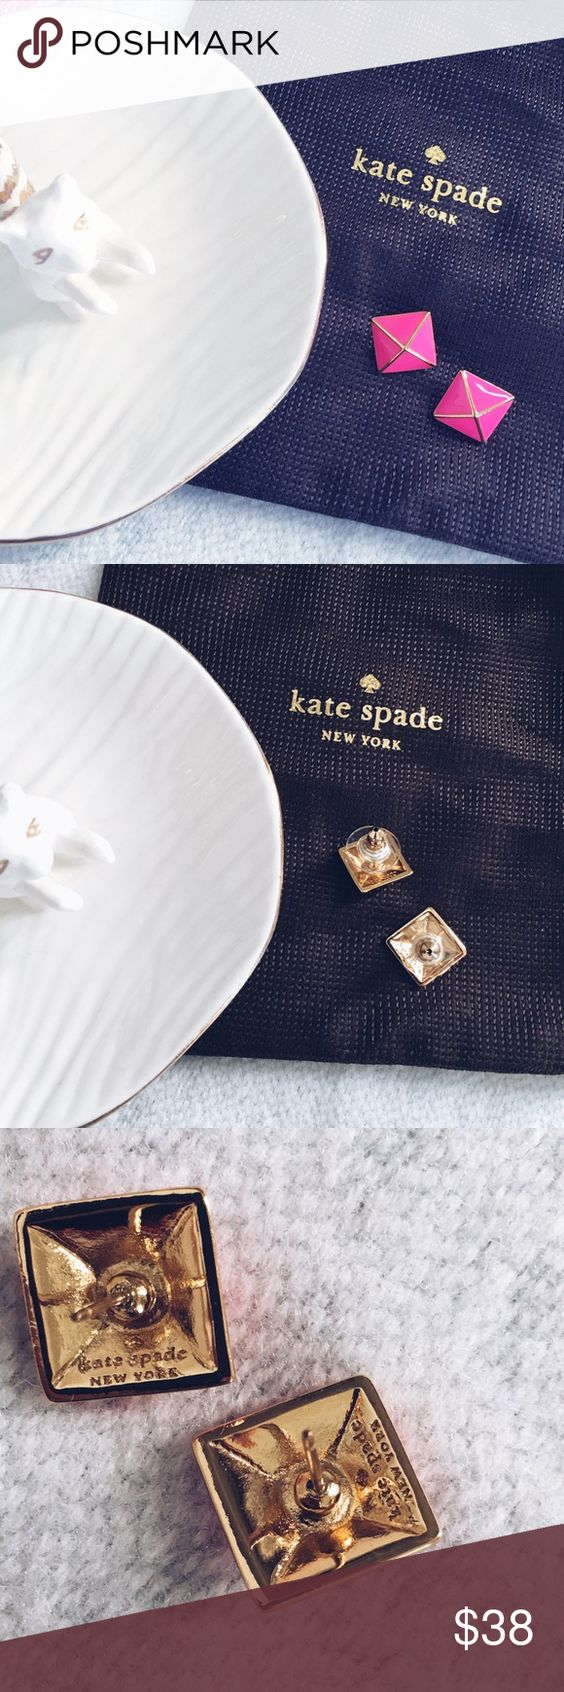 •Kate Spade• pink pyramid earrings Street meets chic in these striking pyramid stud earrings from kate spade new york. Crafted in gold plated mixed metal with enamel accents. Perfect to wear day or night! Measures 1/2 inch. Never worn! Authentic! Will come with KS dust bag 📷 last photo from KS website all other pictures are my own📷 Kate Spade Jewelry Earrings